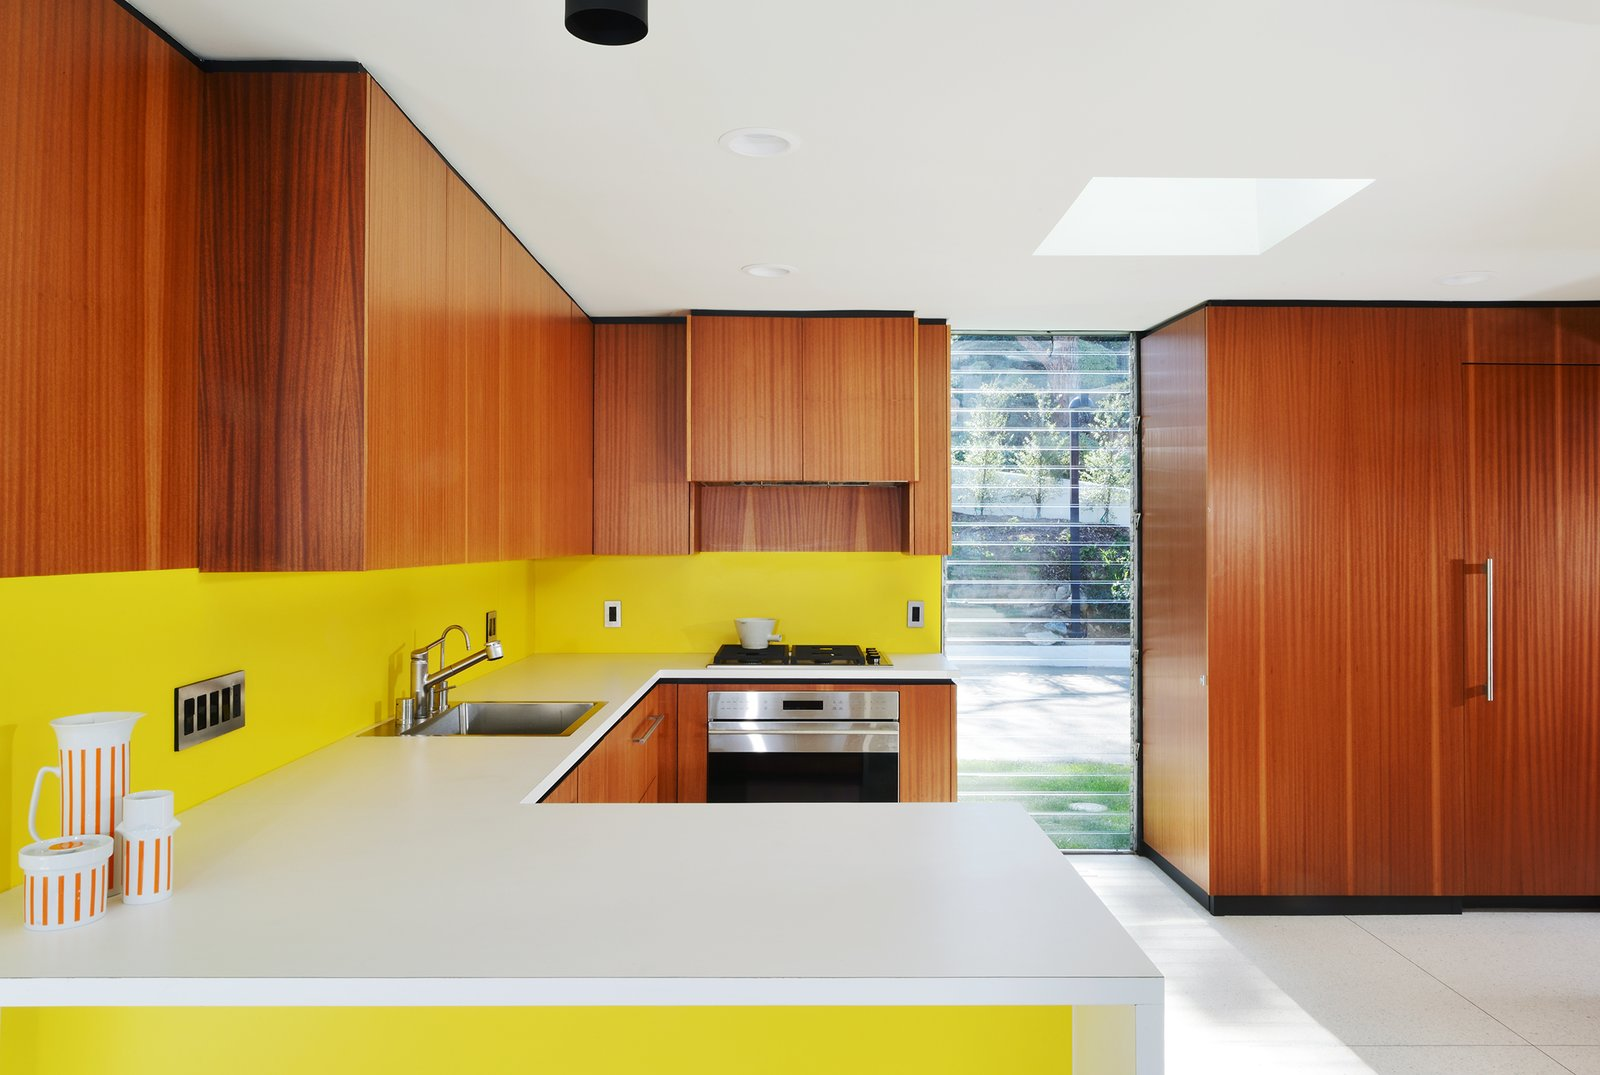 Casa Kundera kitchen with yellow accents and walnut walls